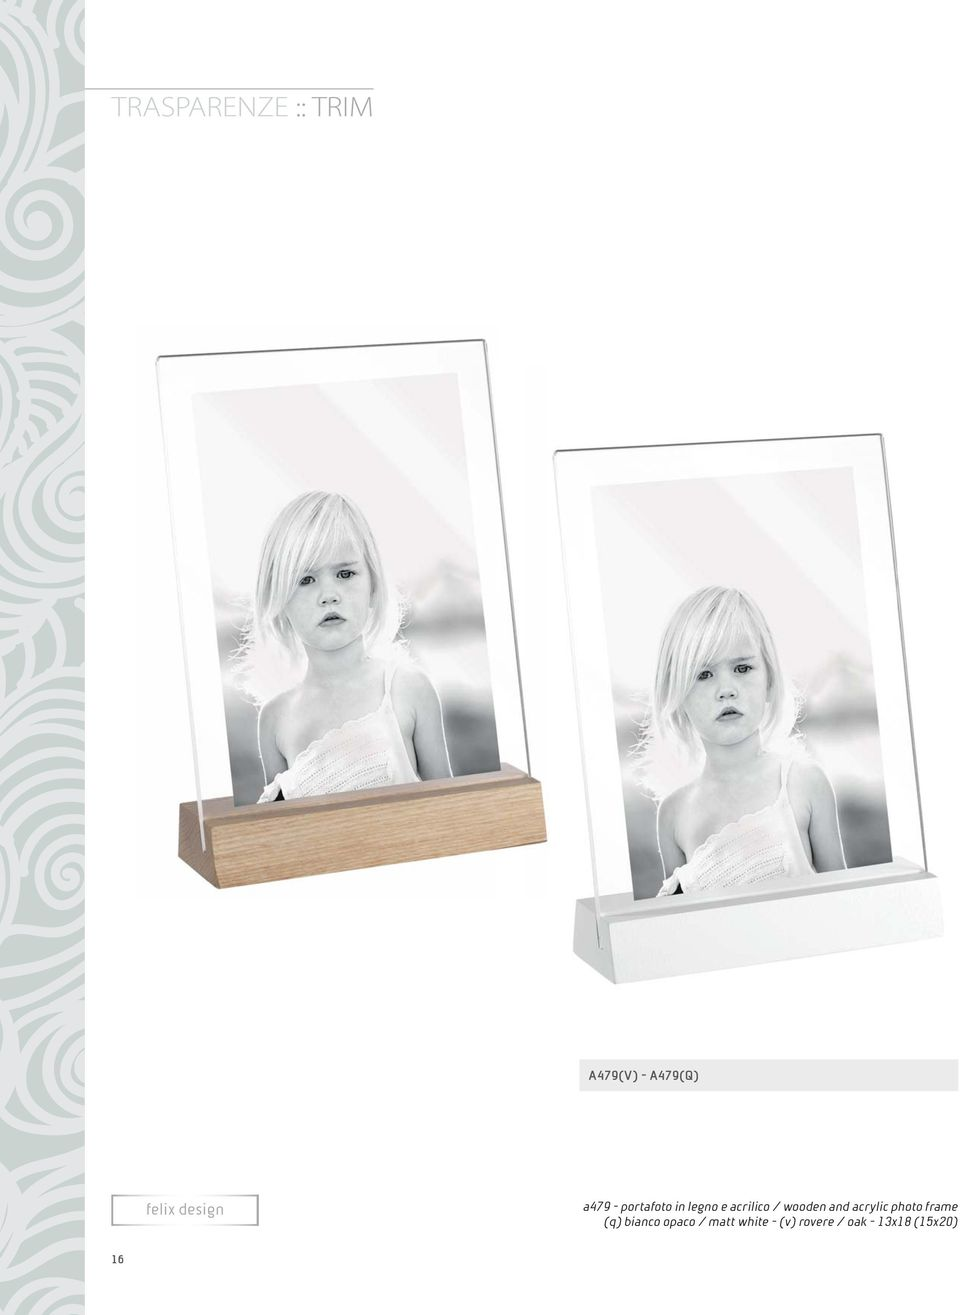 wooden and acrylic photo frame (q) bianco